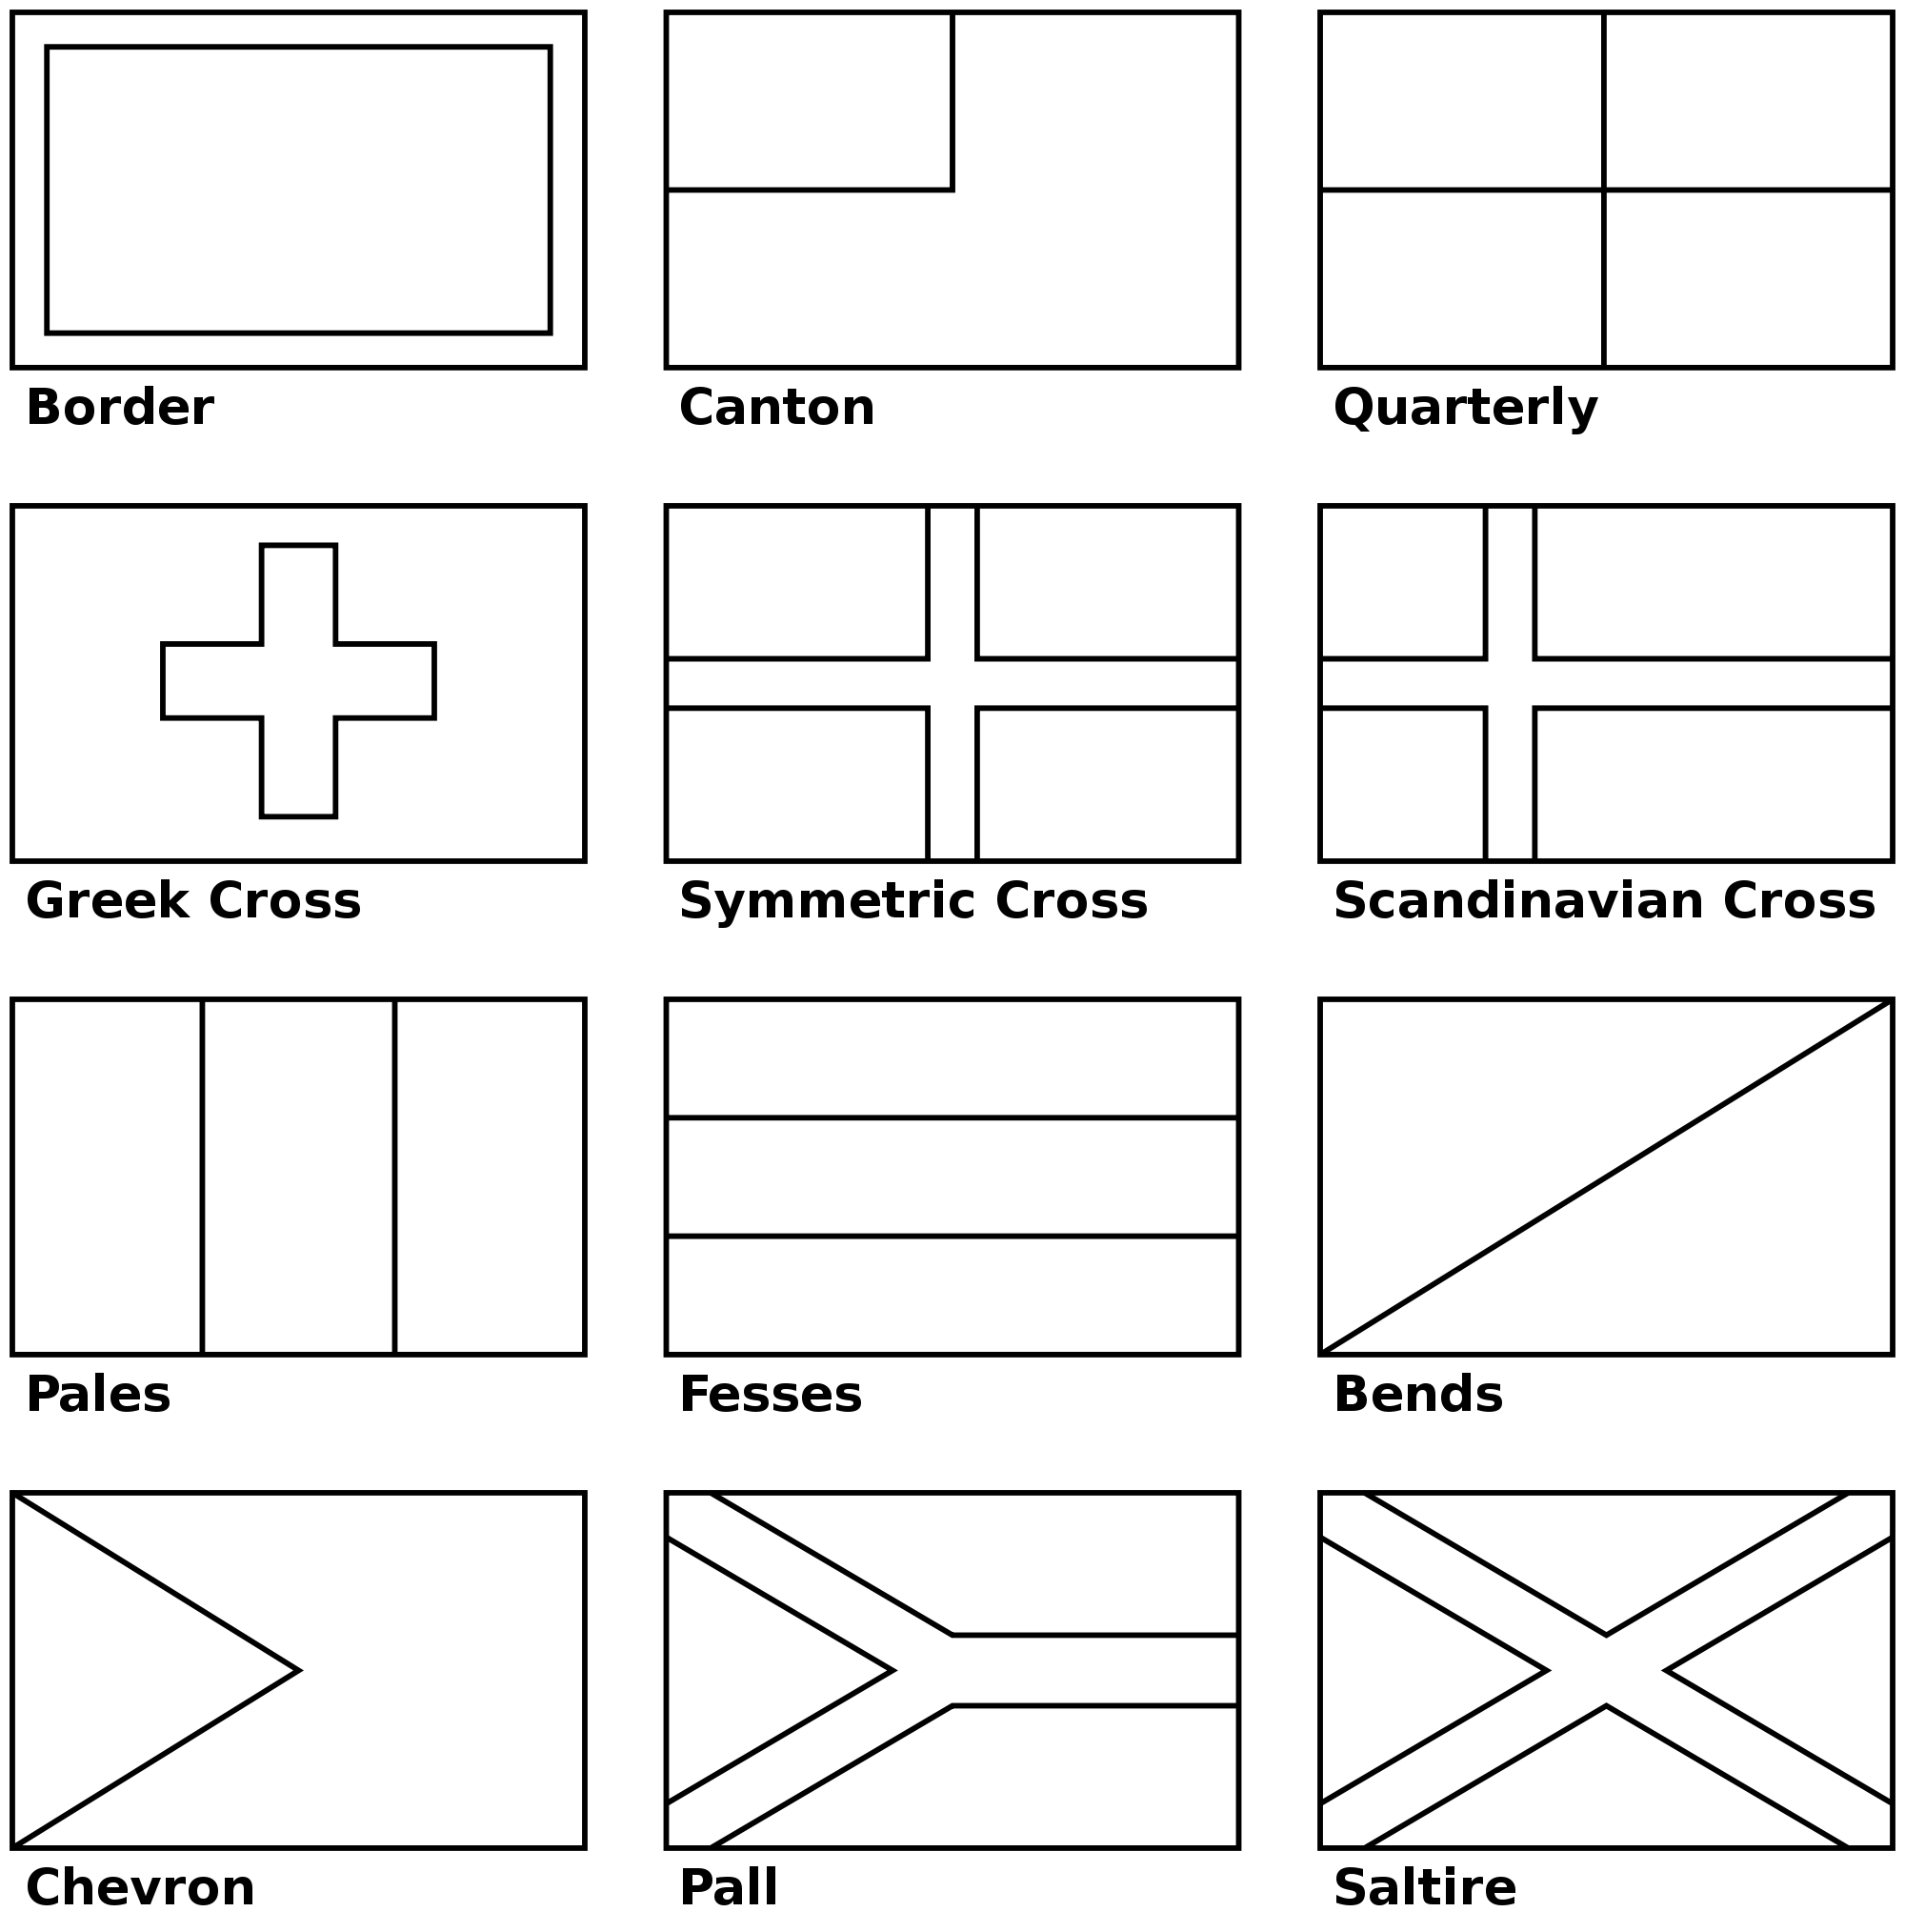 flags of the world to color flags of countries coloring pages download and print for free color to world the of flags